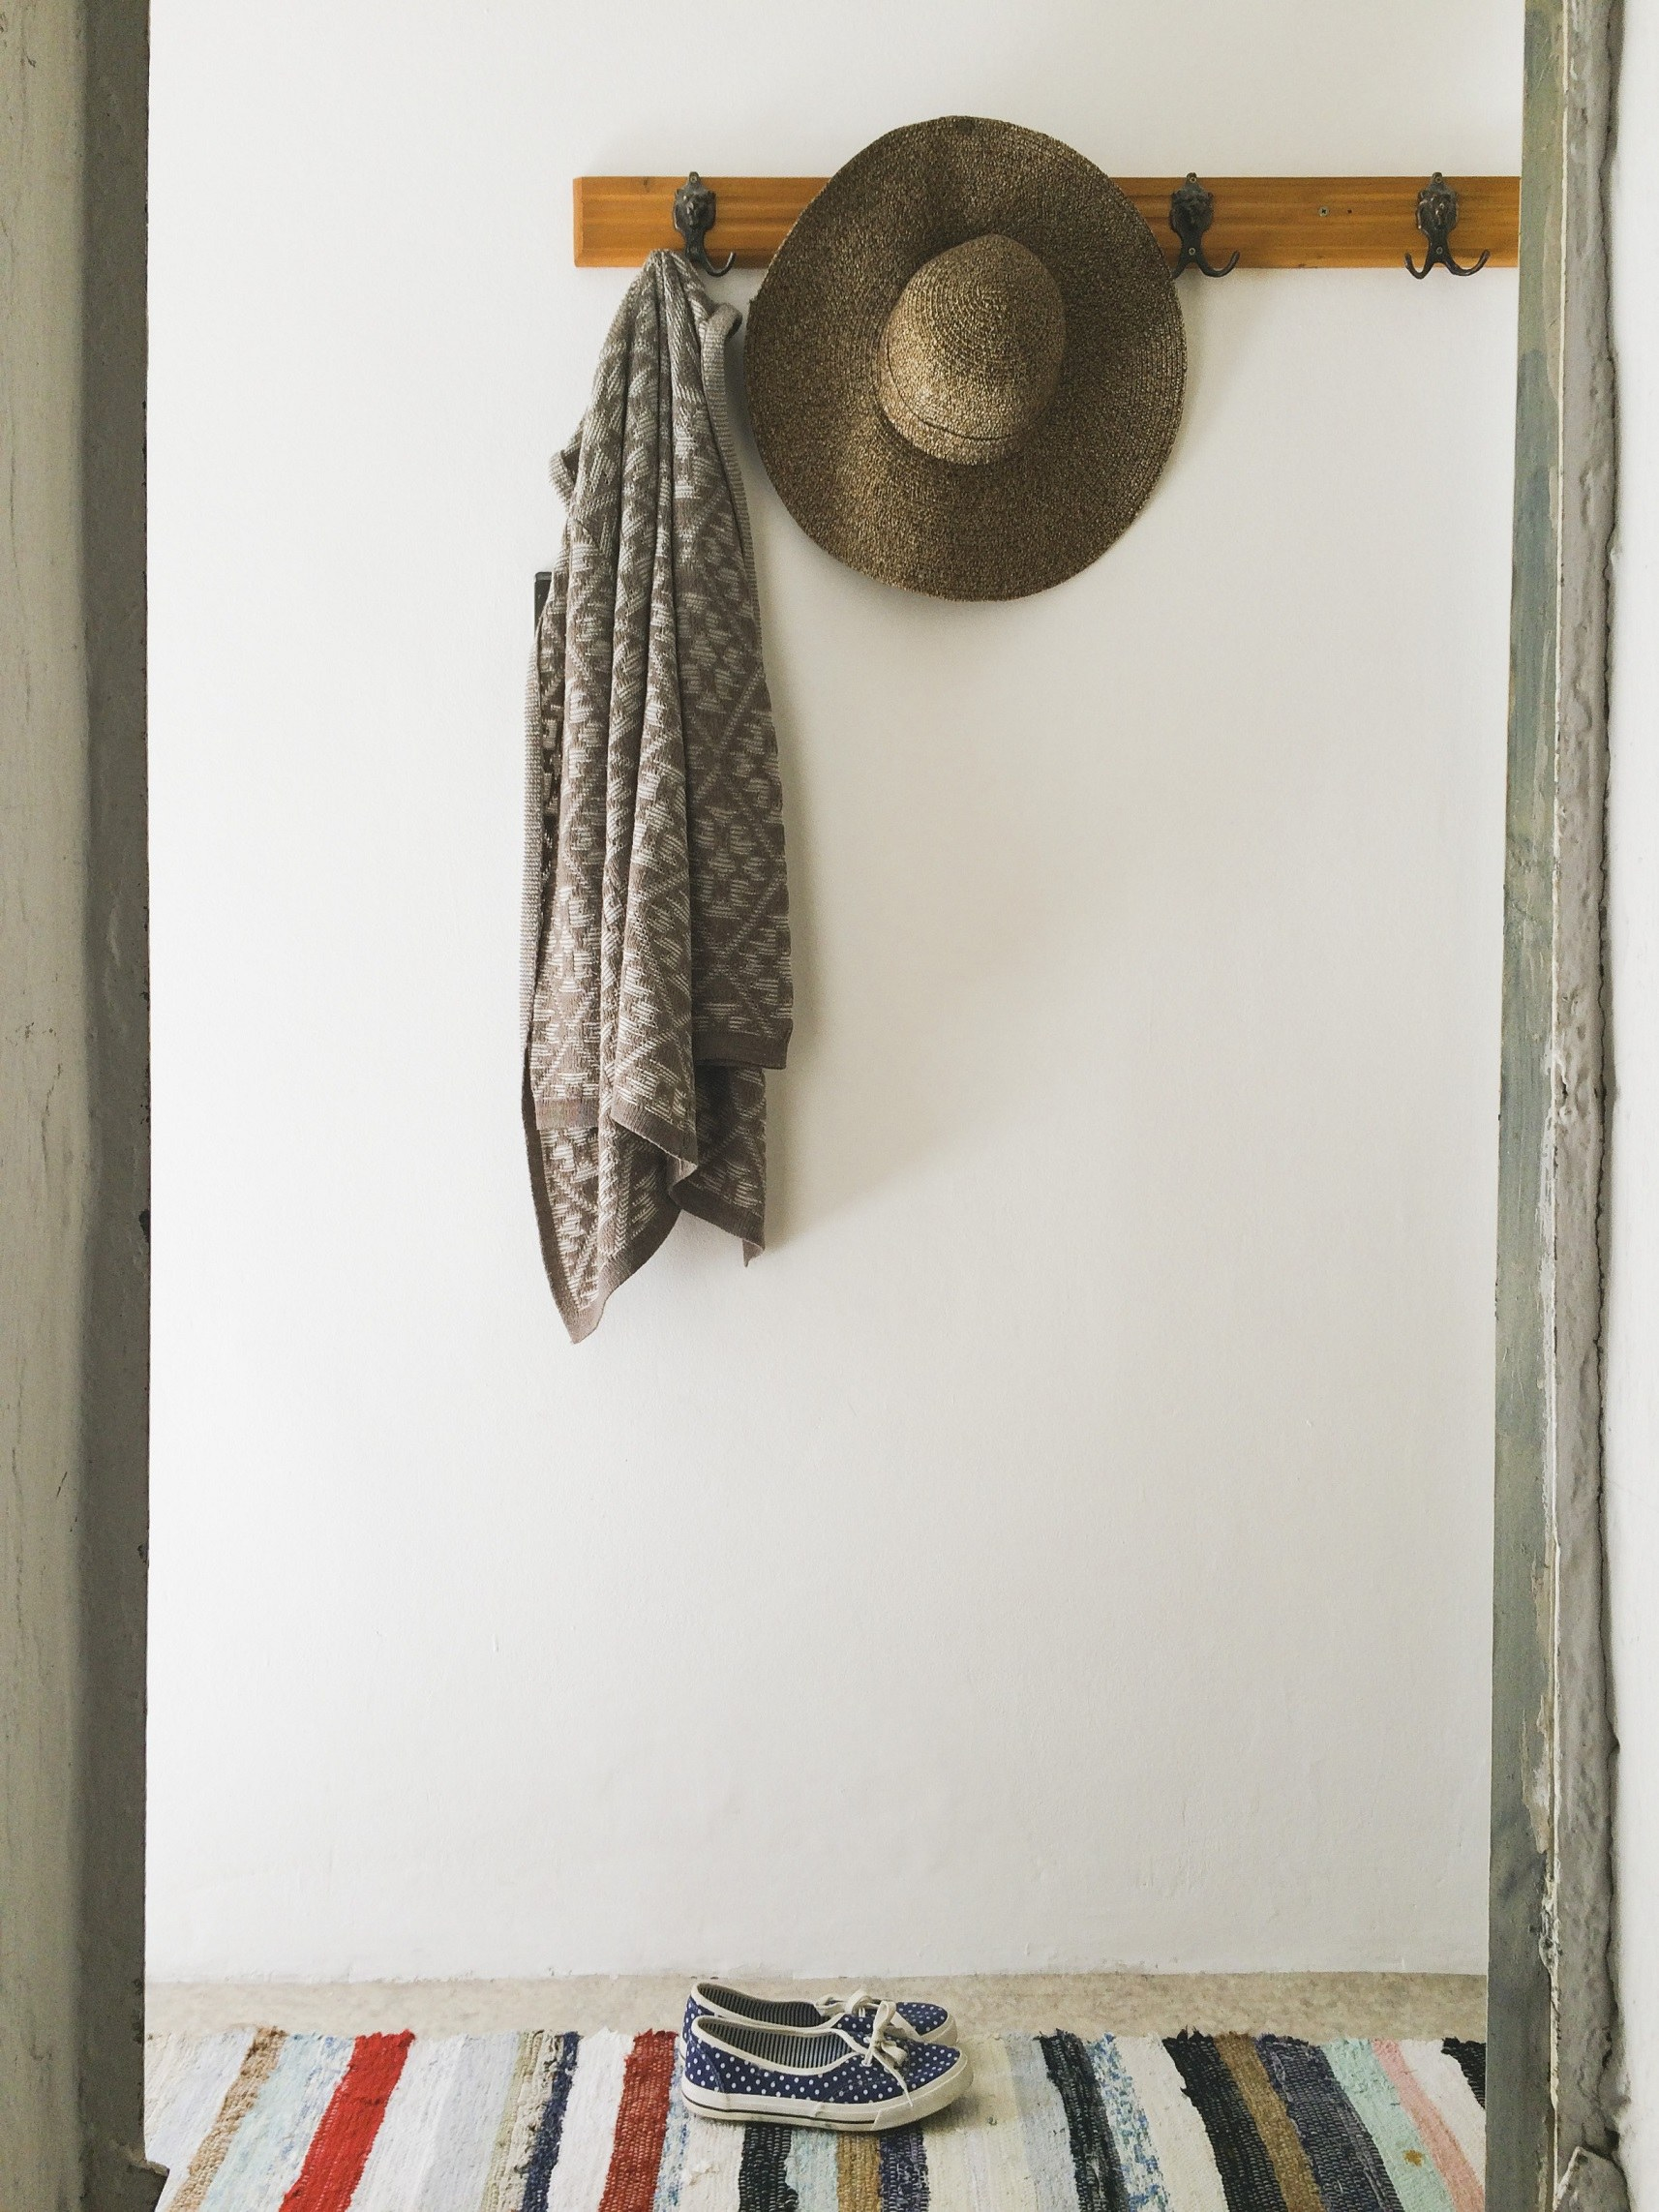 A coat and a hay cap hanging on the wall. Espadrilles underneath. Colorful rug.